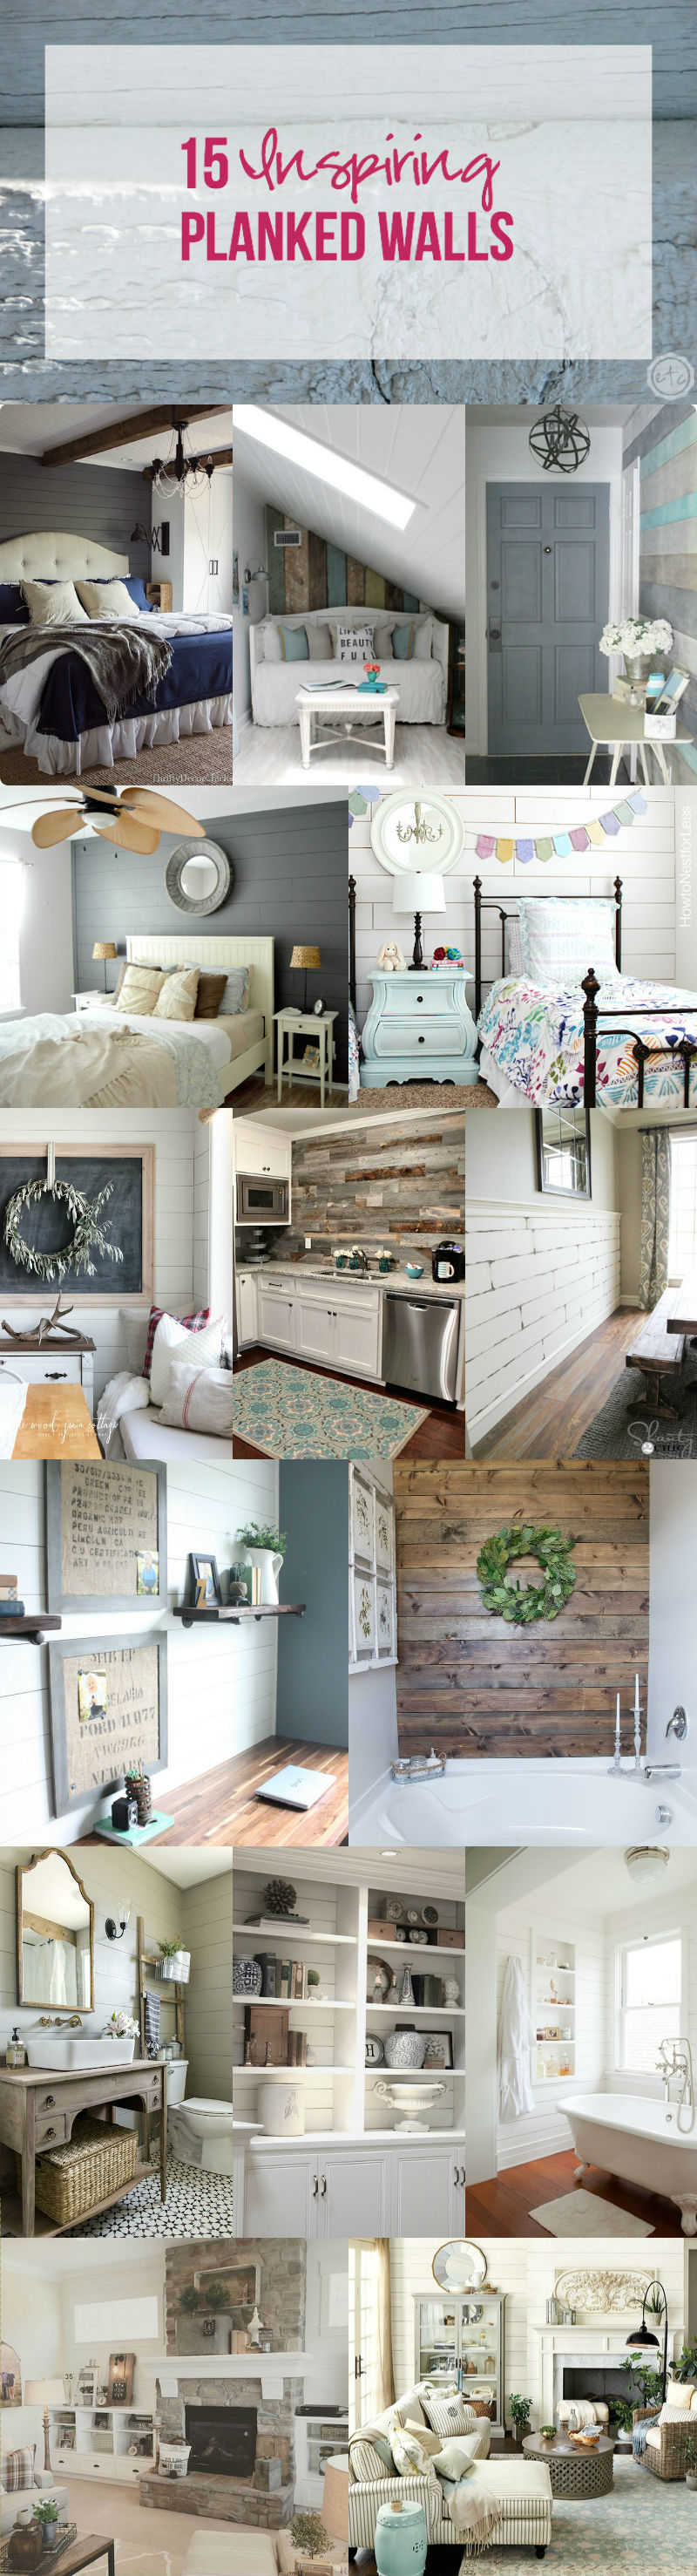 15 Inspiring Planked Walls with Happily Ever After, Etc.